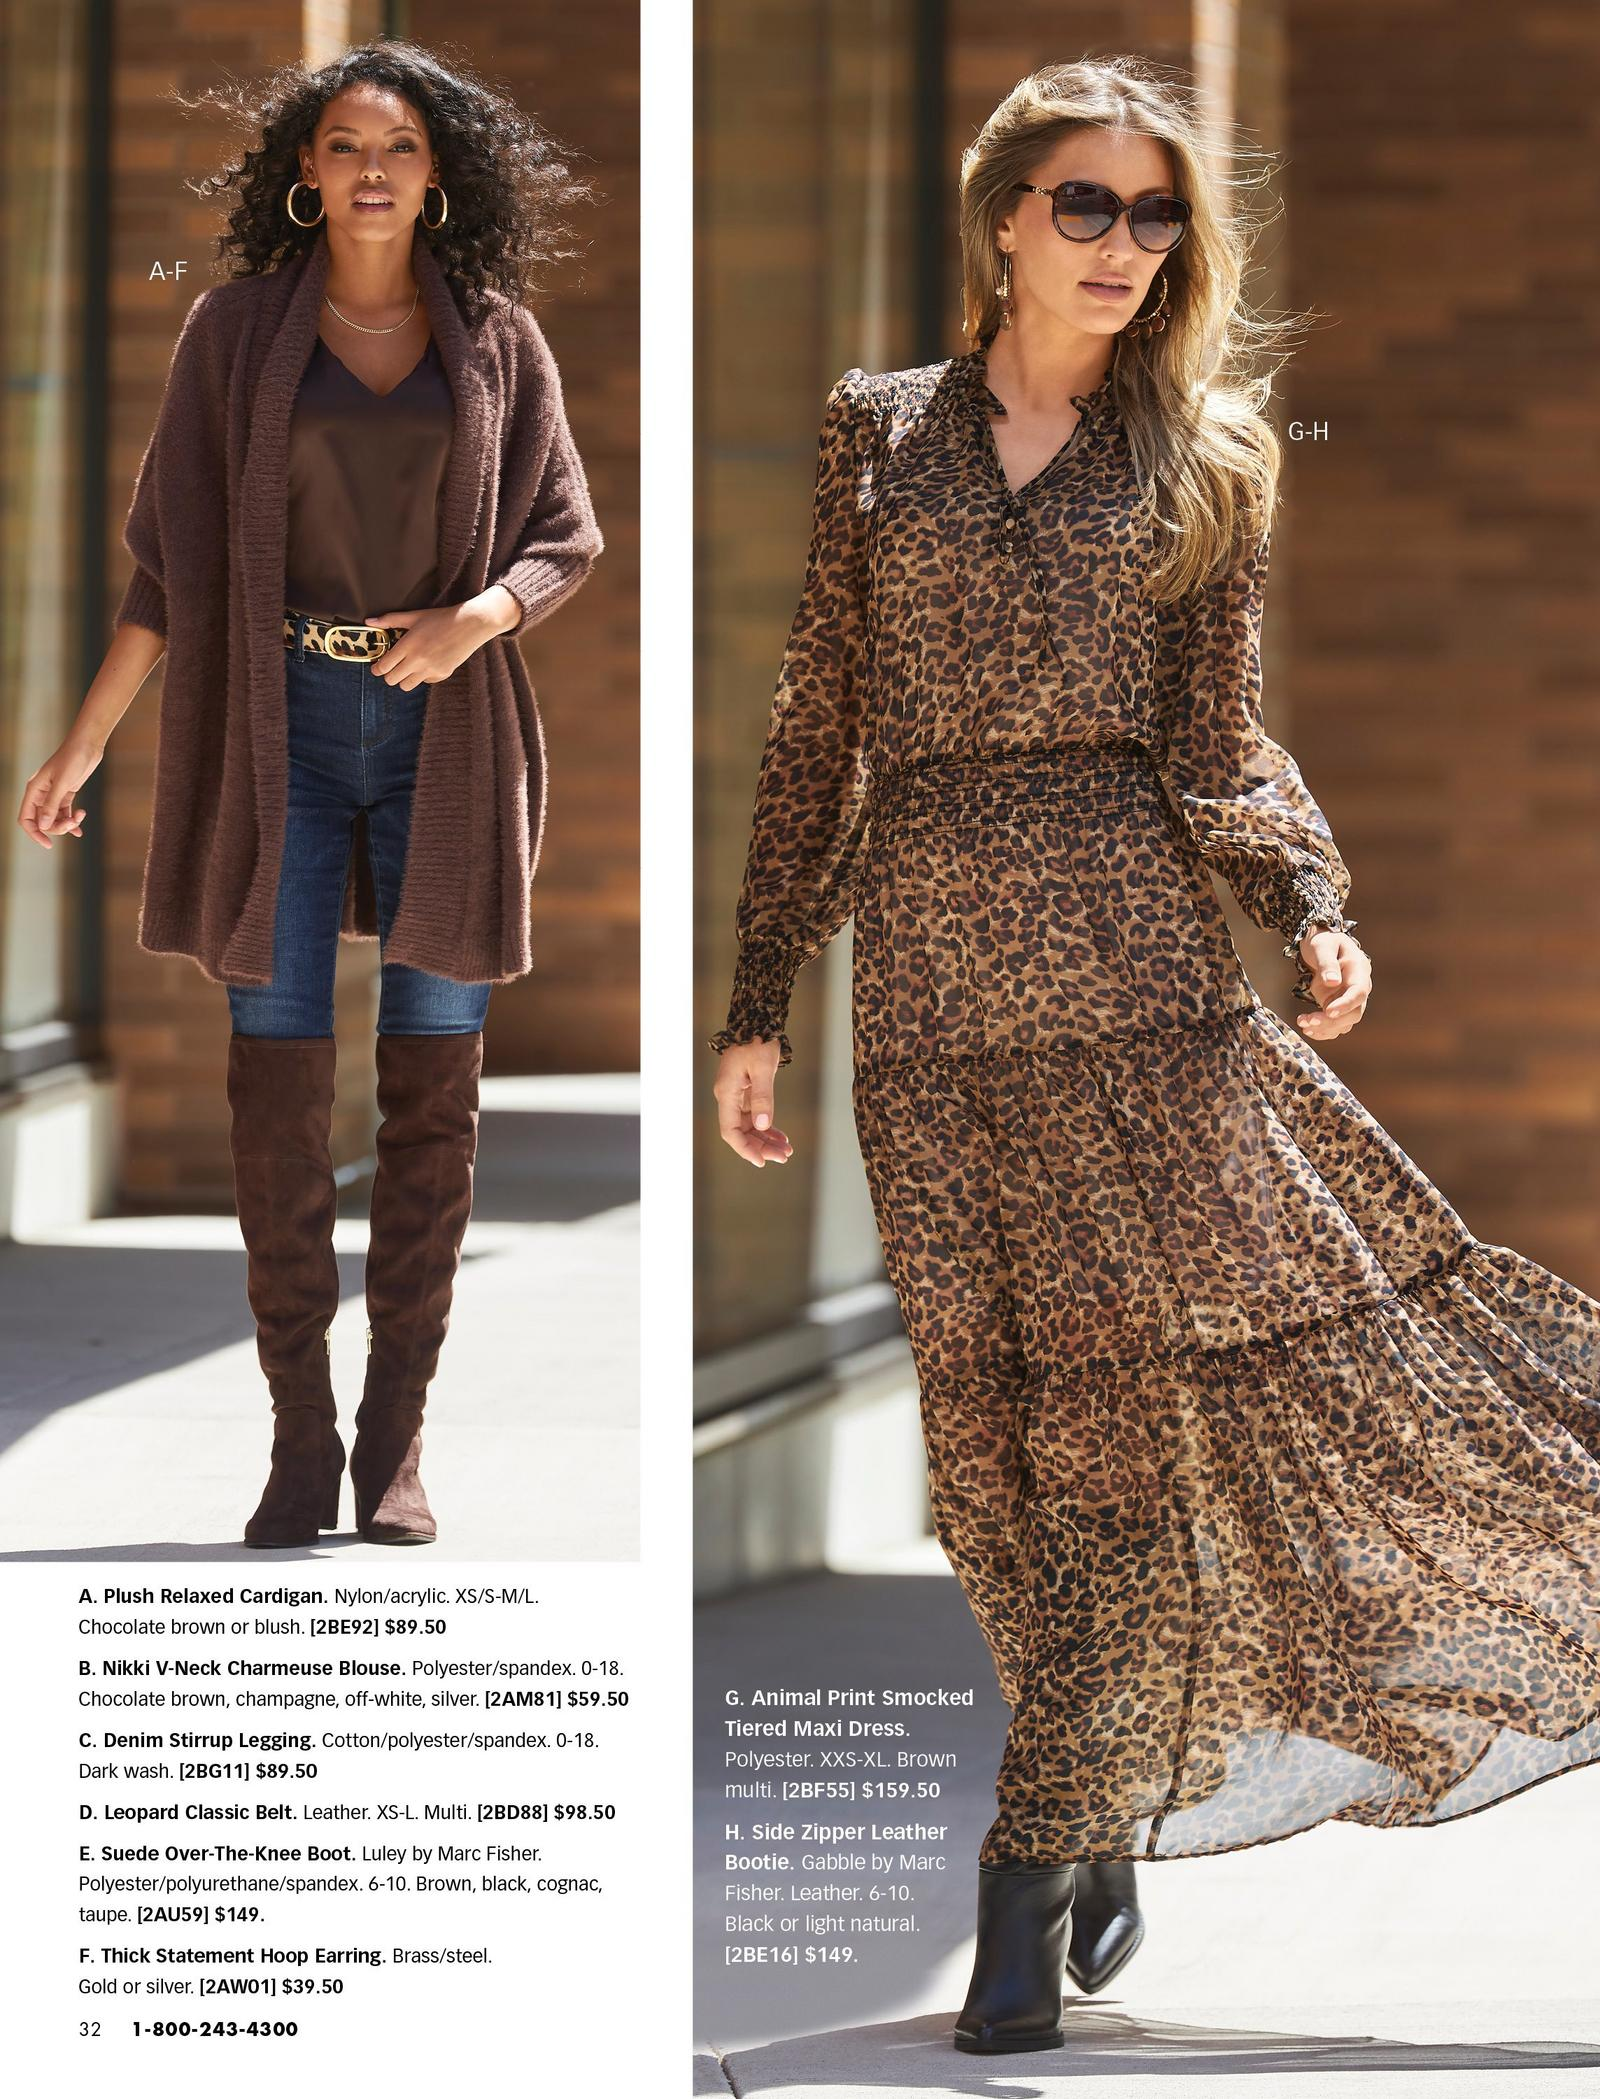 left model wearing a brown plush relaxed cardigan, brown v-neck tank top, animal print belt, jeans, brown over-the-knee suede boots, and gold hoop earrings. right model wearing a long-sleeve animal print smocked tiered maxi dress and black leather booties.